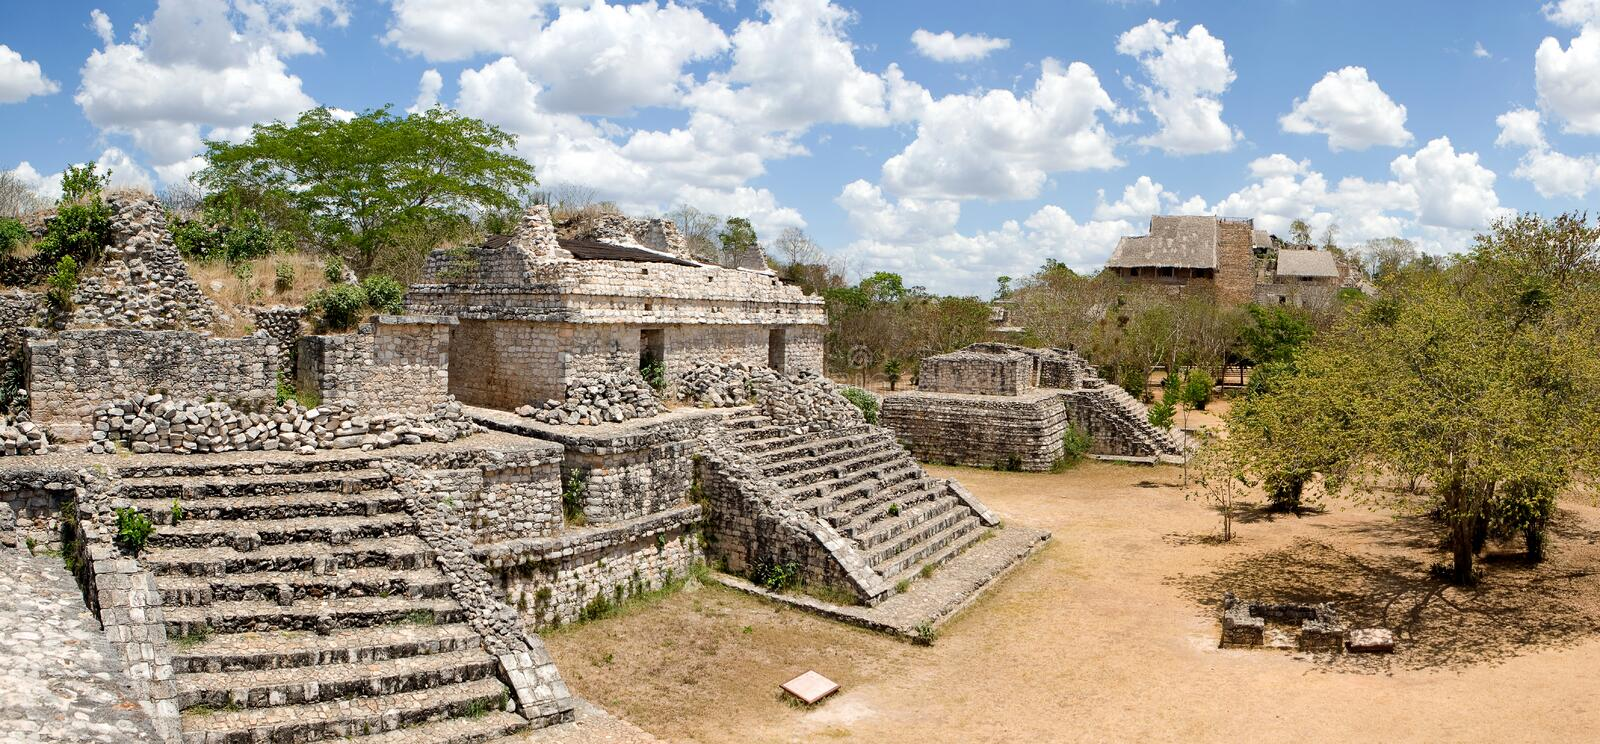 Download Ek Balam - Ancient Maya City. Stock Image - Image: 20513699